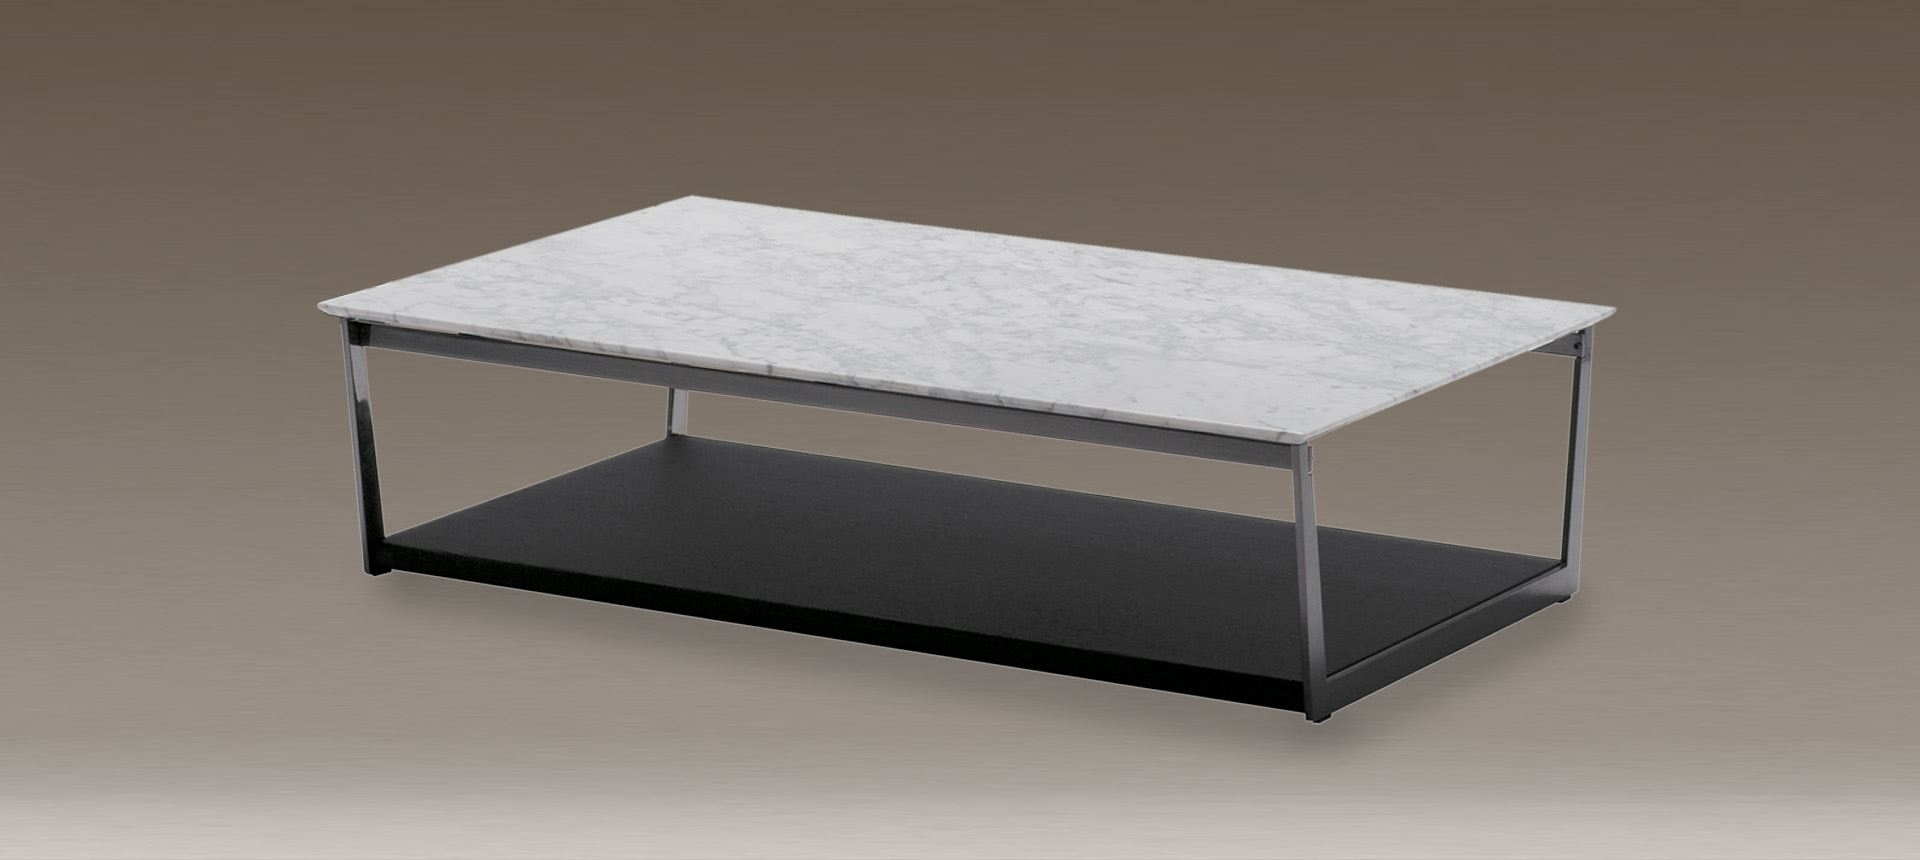 Camerich Sofe I Lampe. Coffee Table intended for Element Coffee Tables (Image 8 of 30)